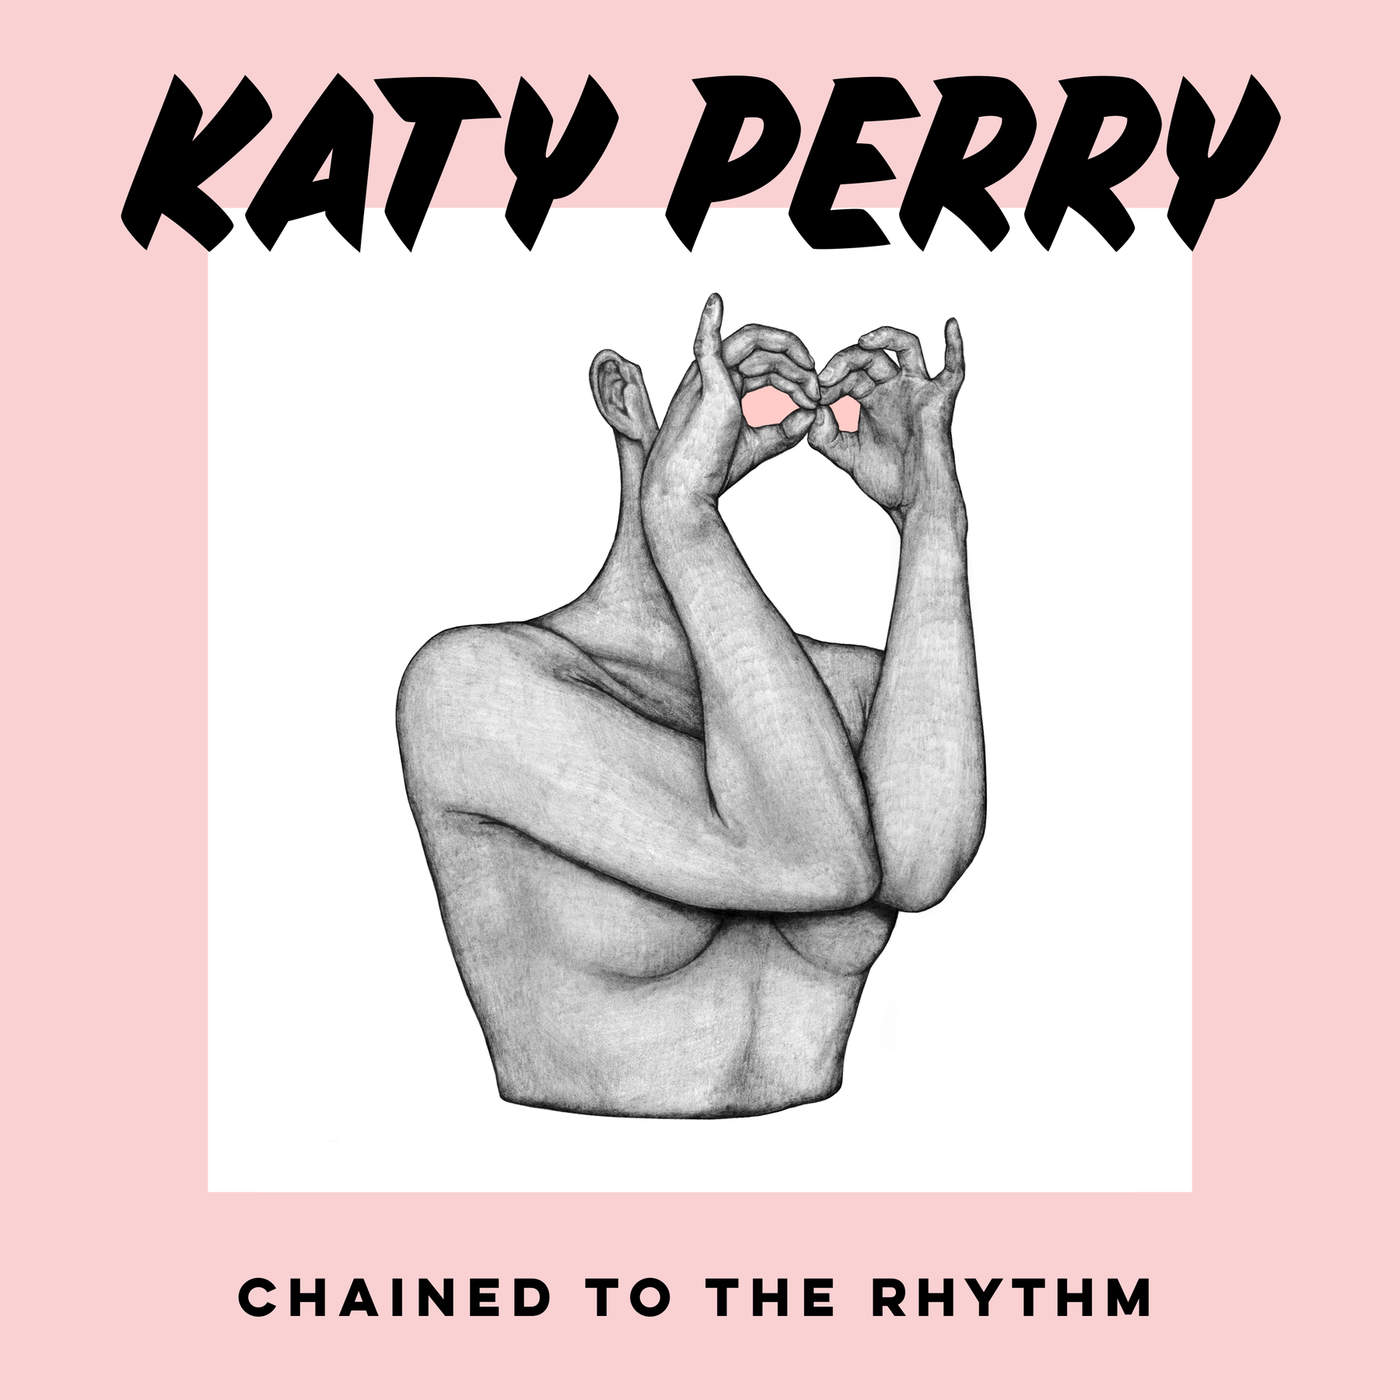 Katy+Perry+-+Chained+to+the+Rhythm+%2528